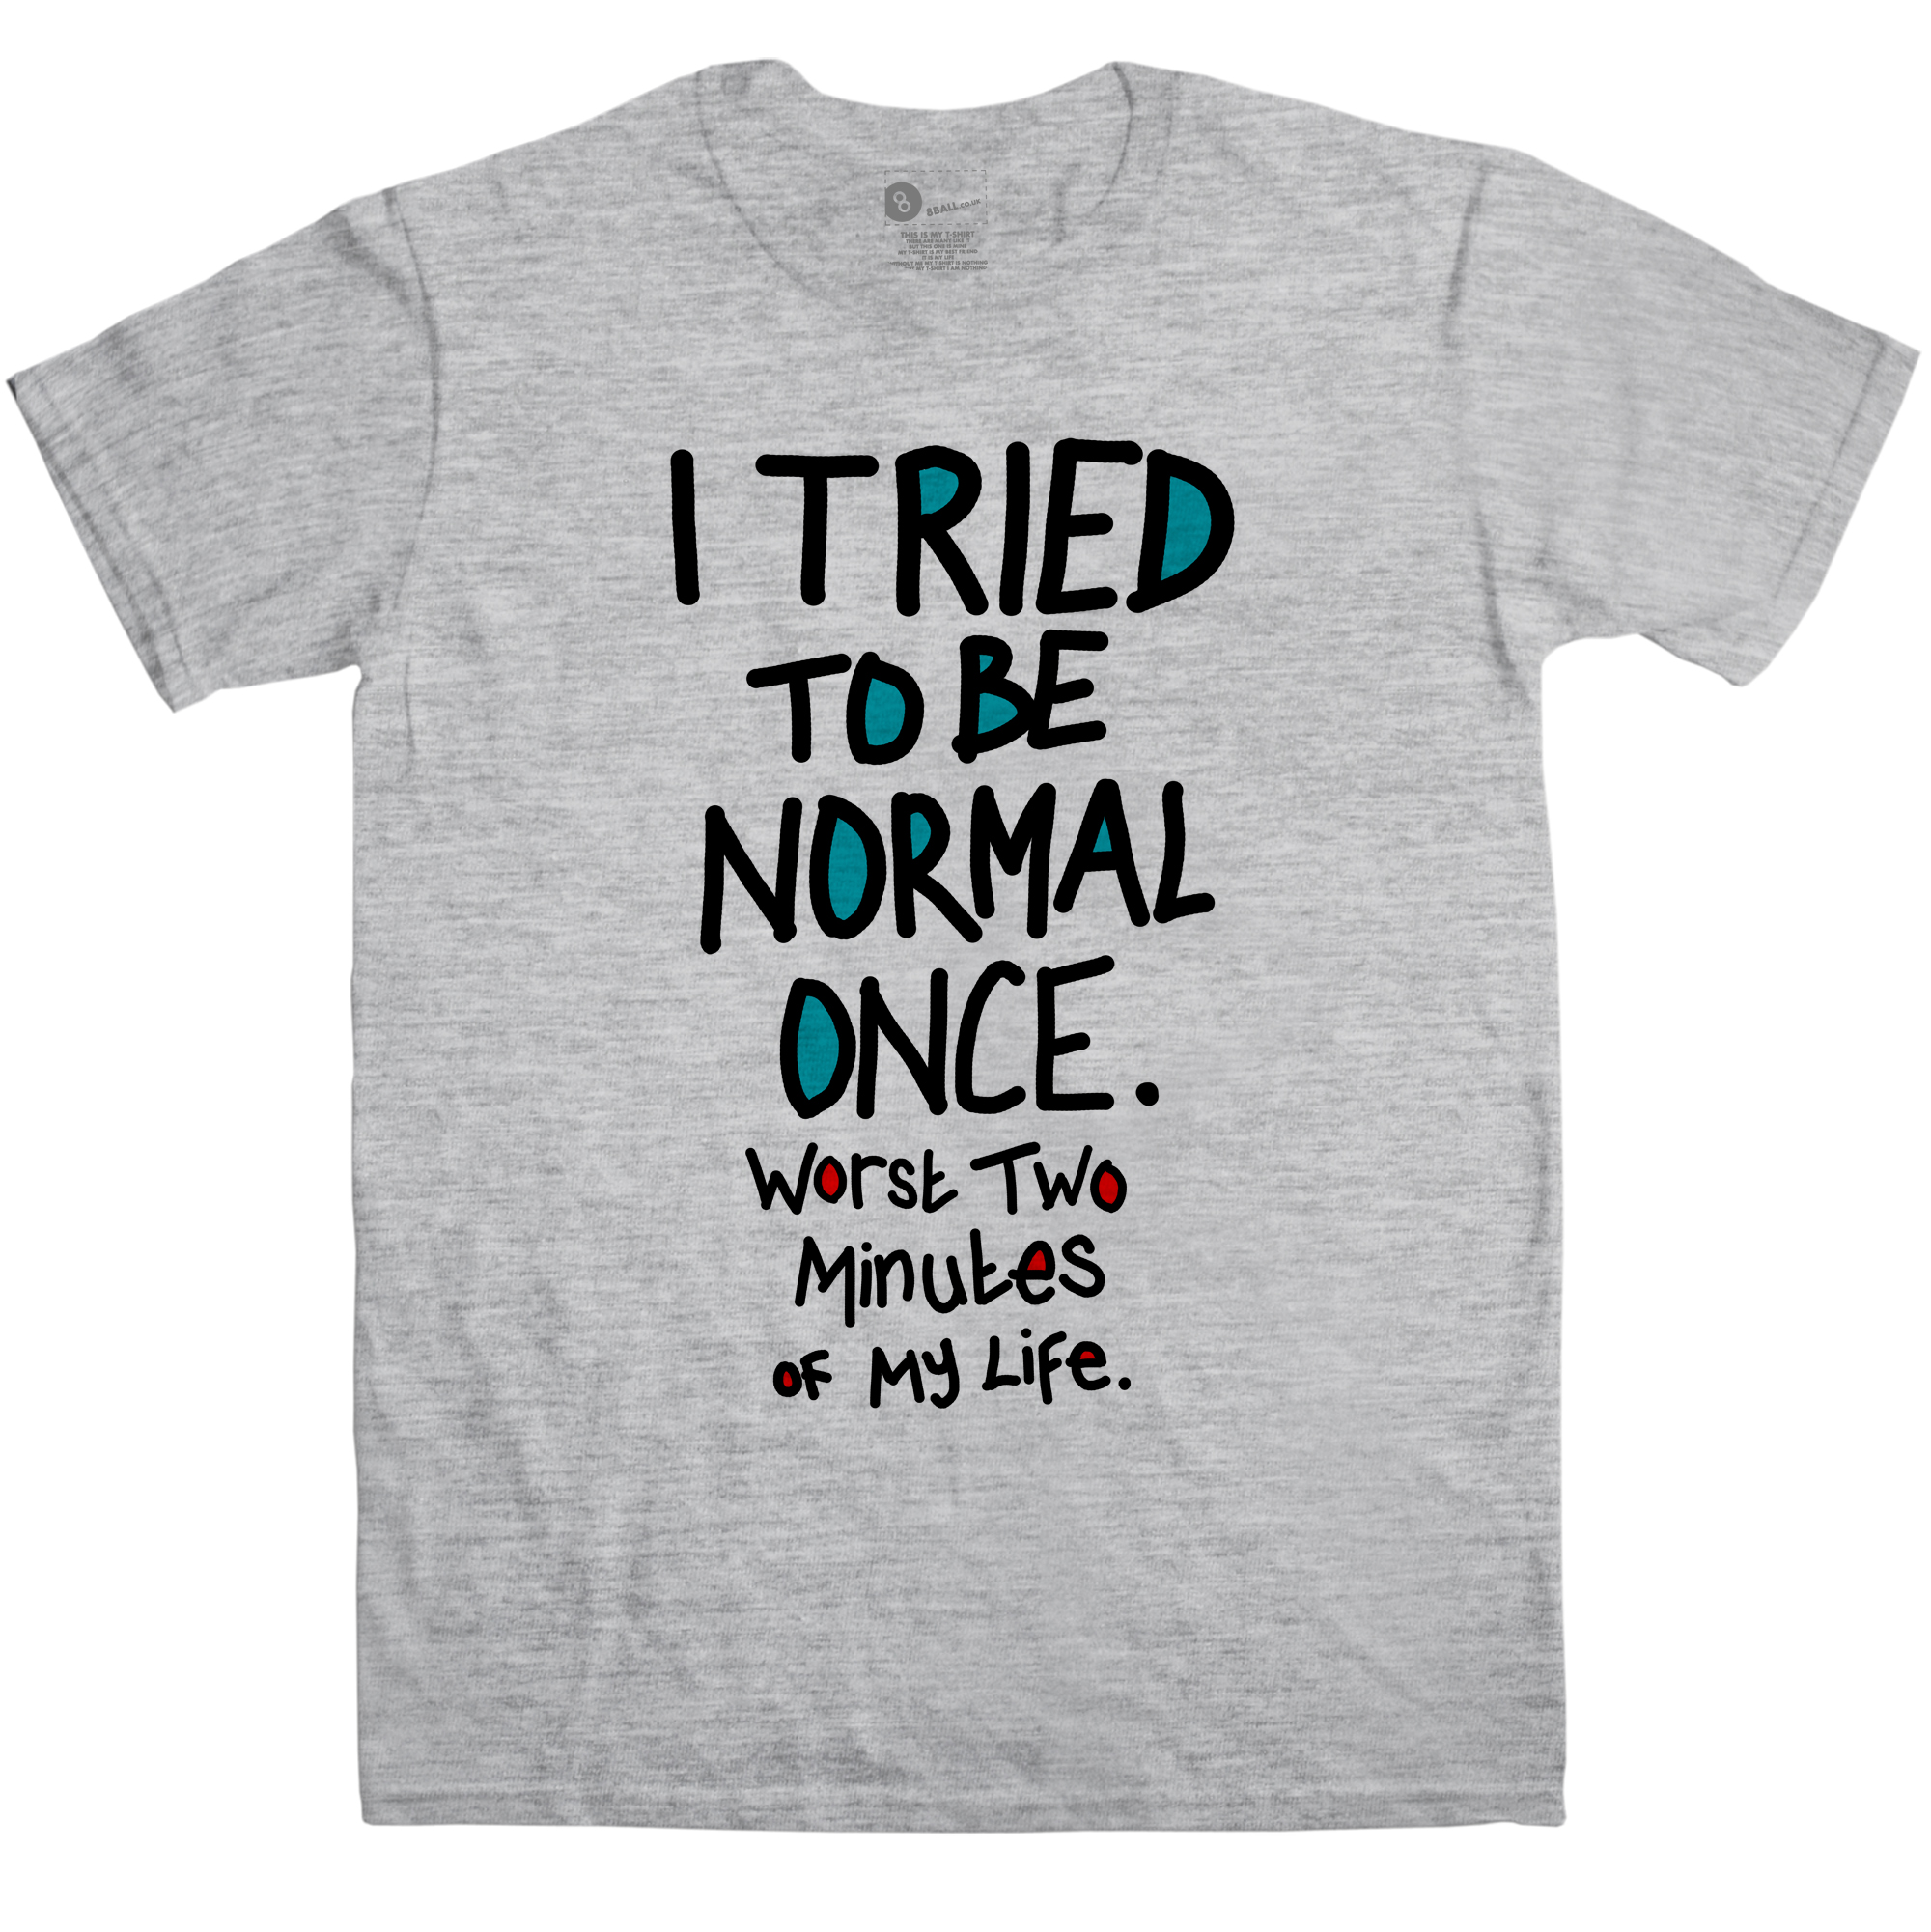 Funny Slogan Mens T Shirt - I tried To Be Normal Once